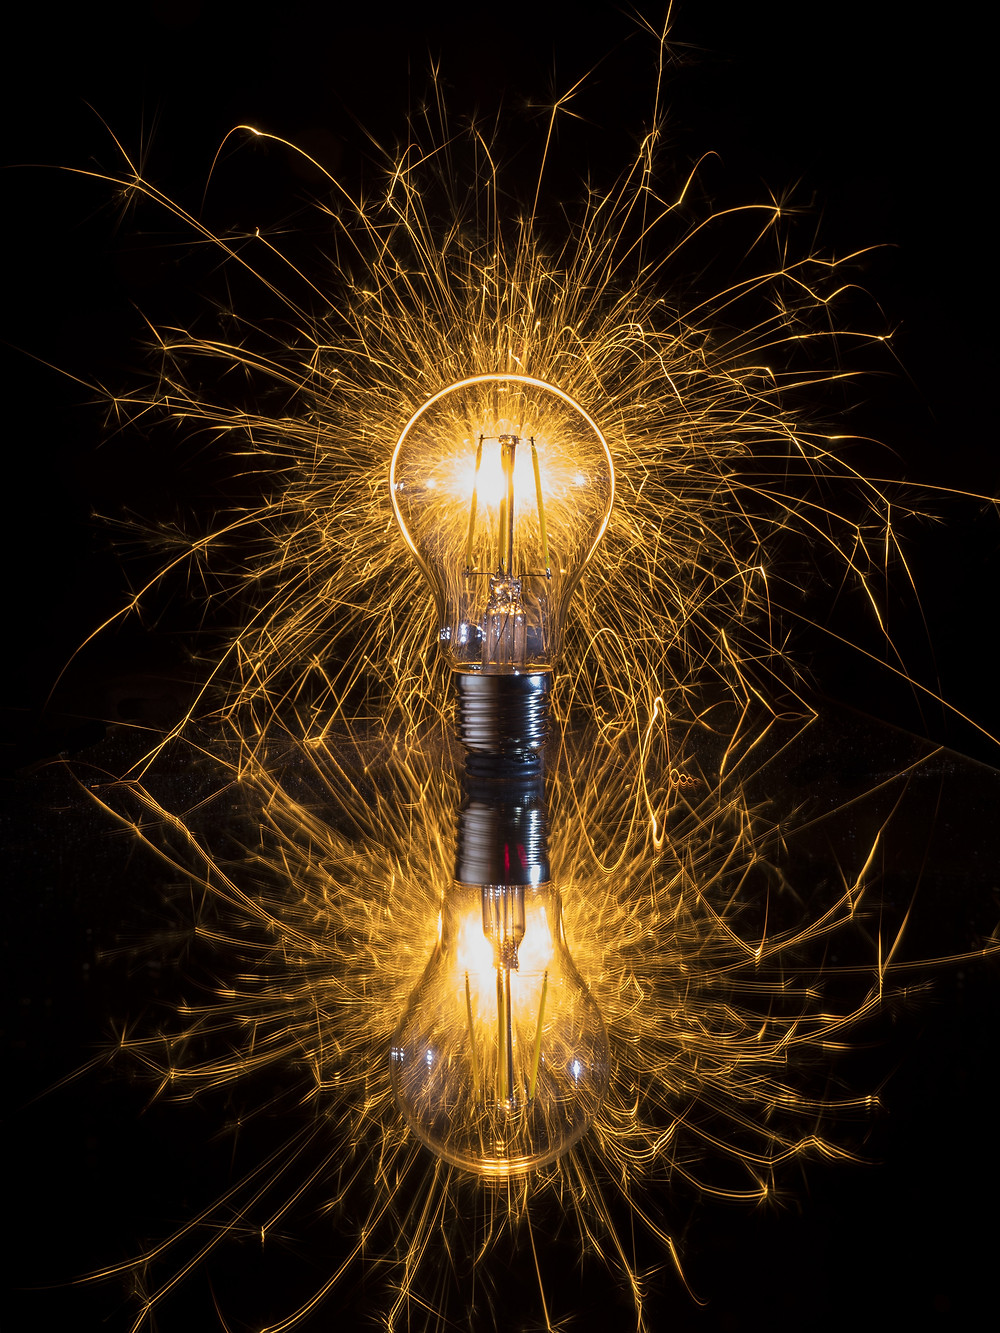 A light bulb giving off sparks.